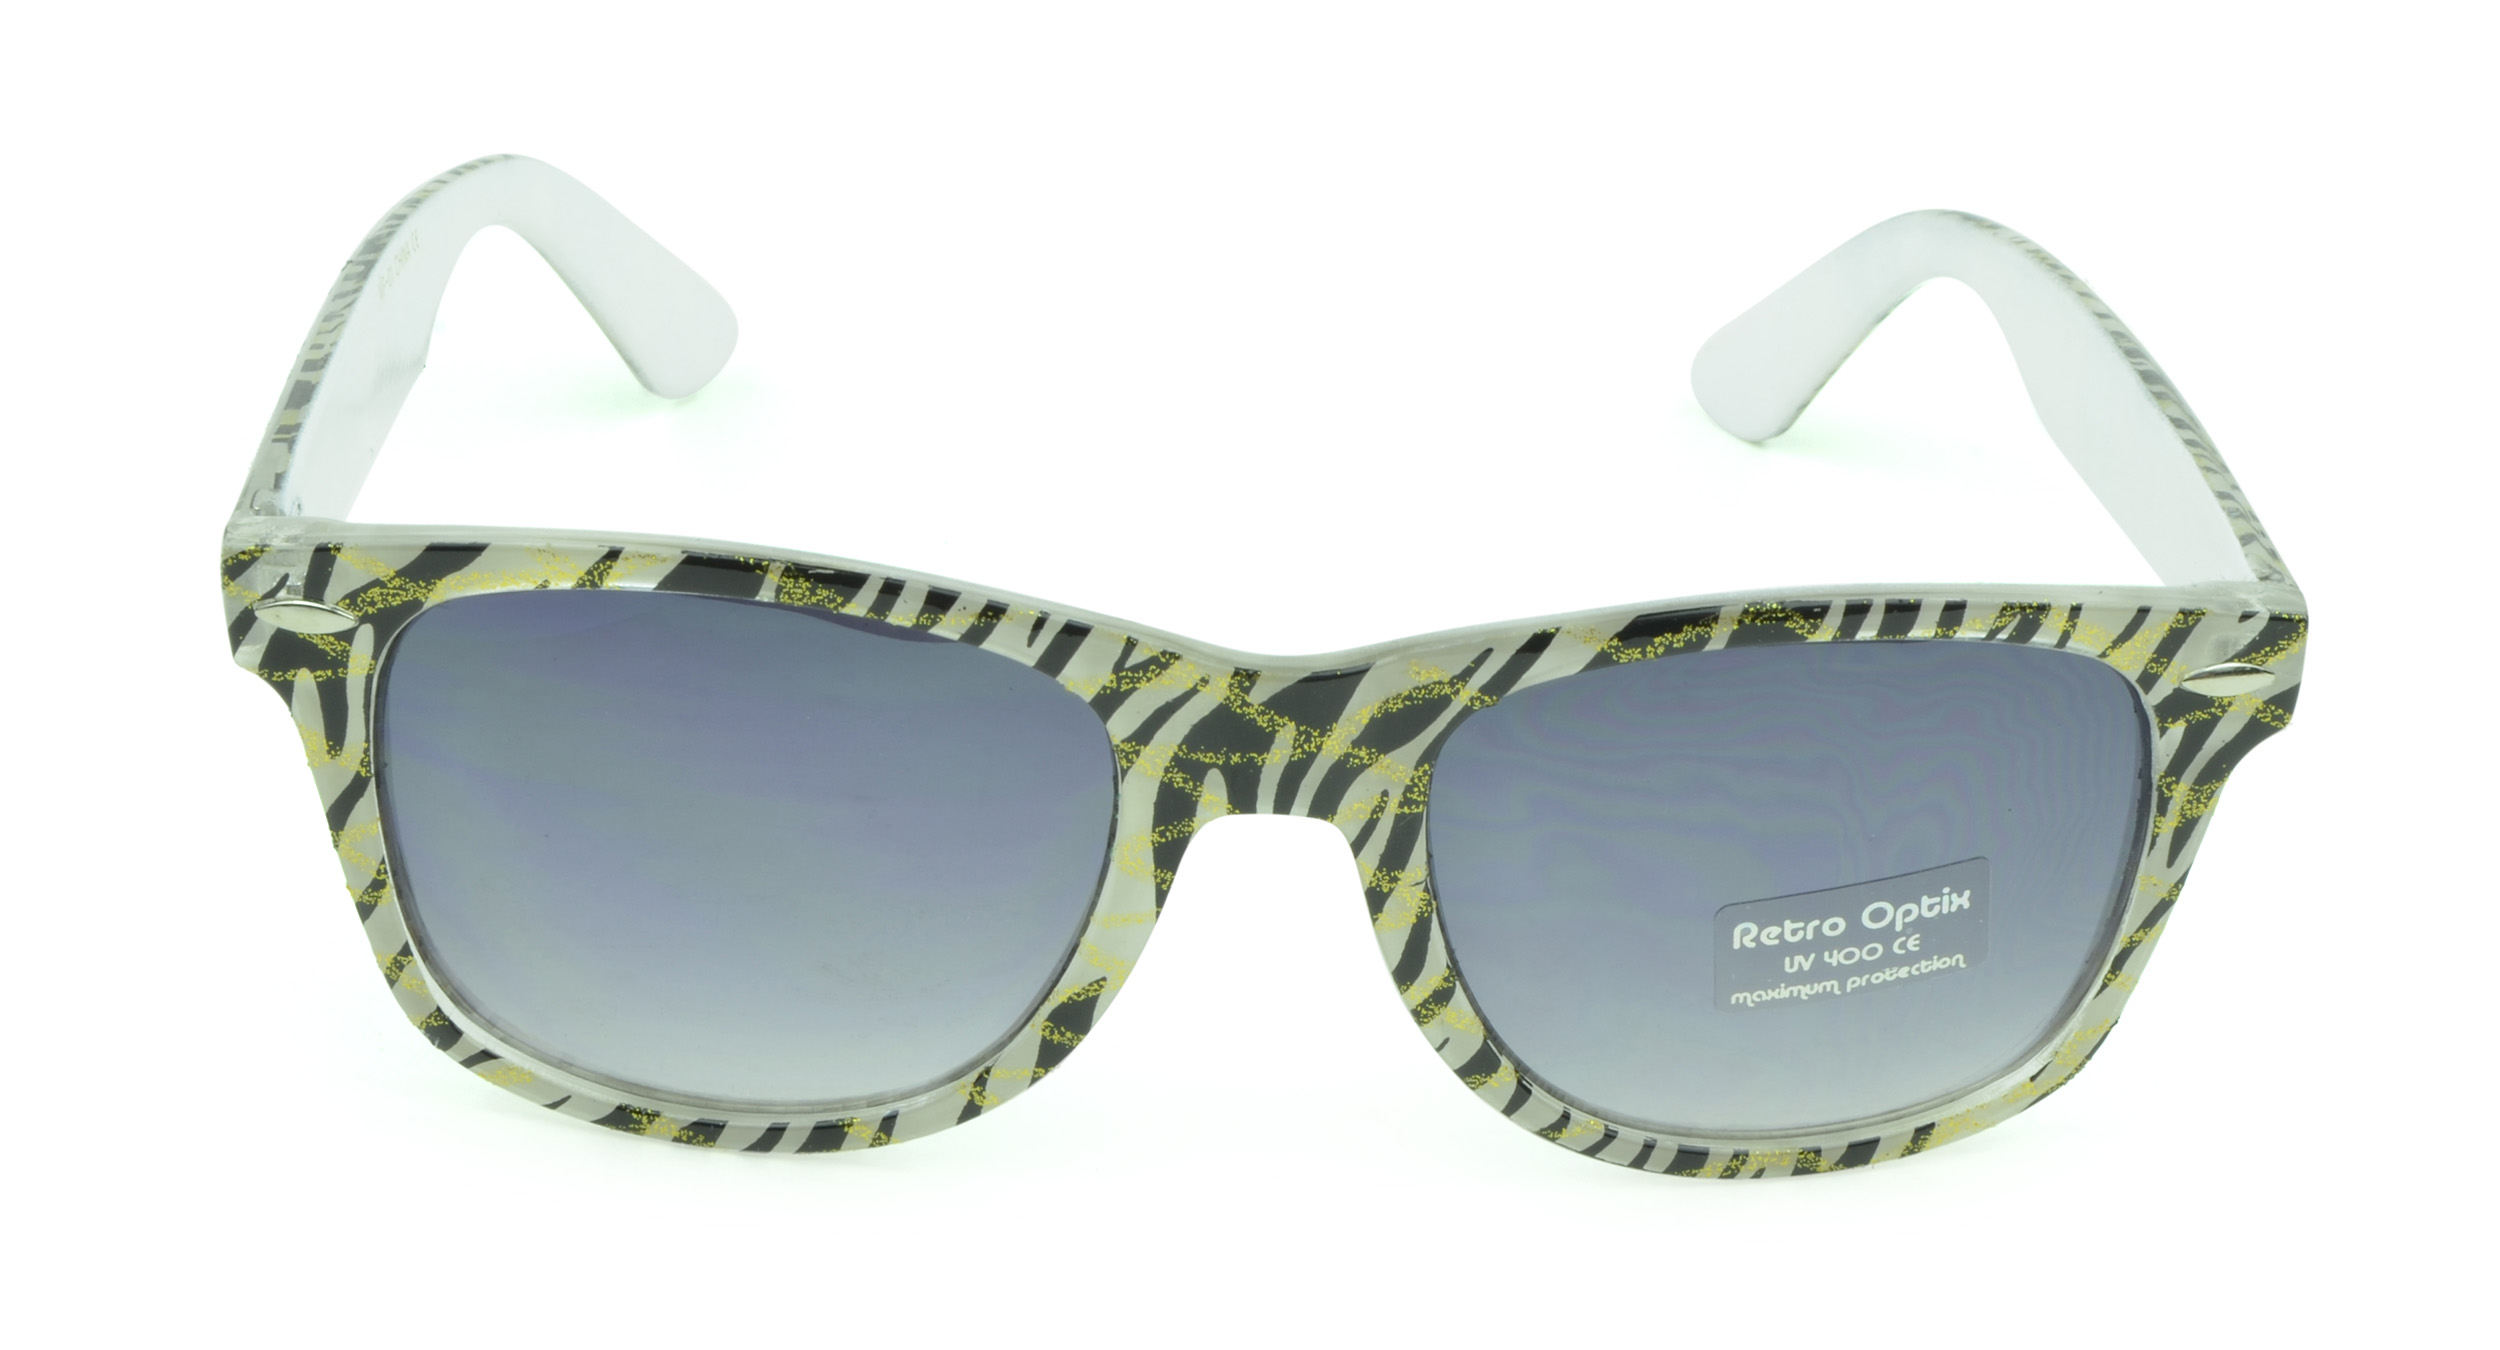 Belle Donne - Wayfarer Style Sunglasses Trendy Cheap Sunglasses High Quality Animal Print - White